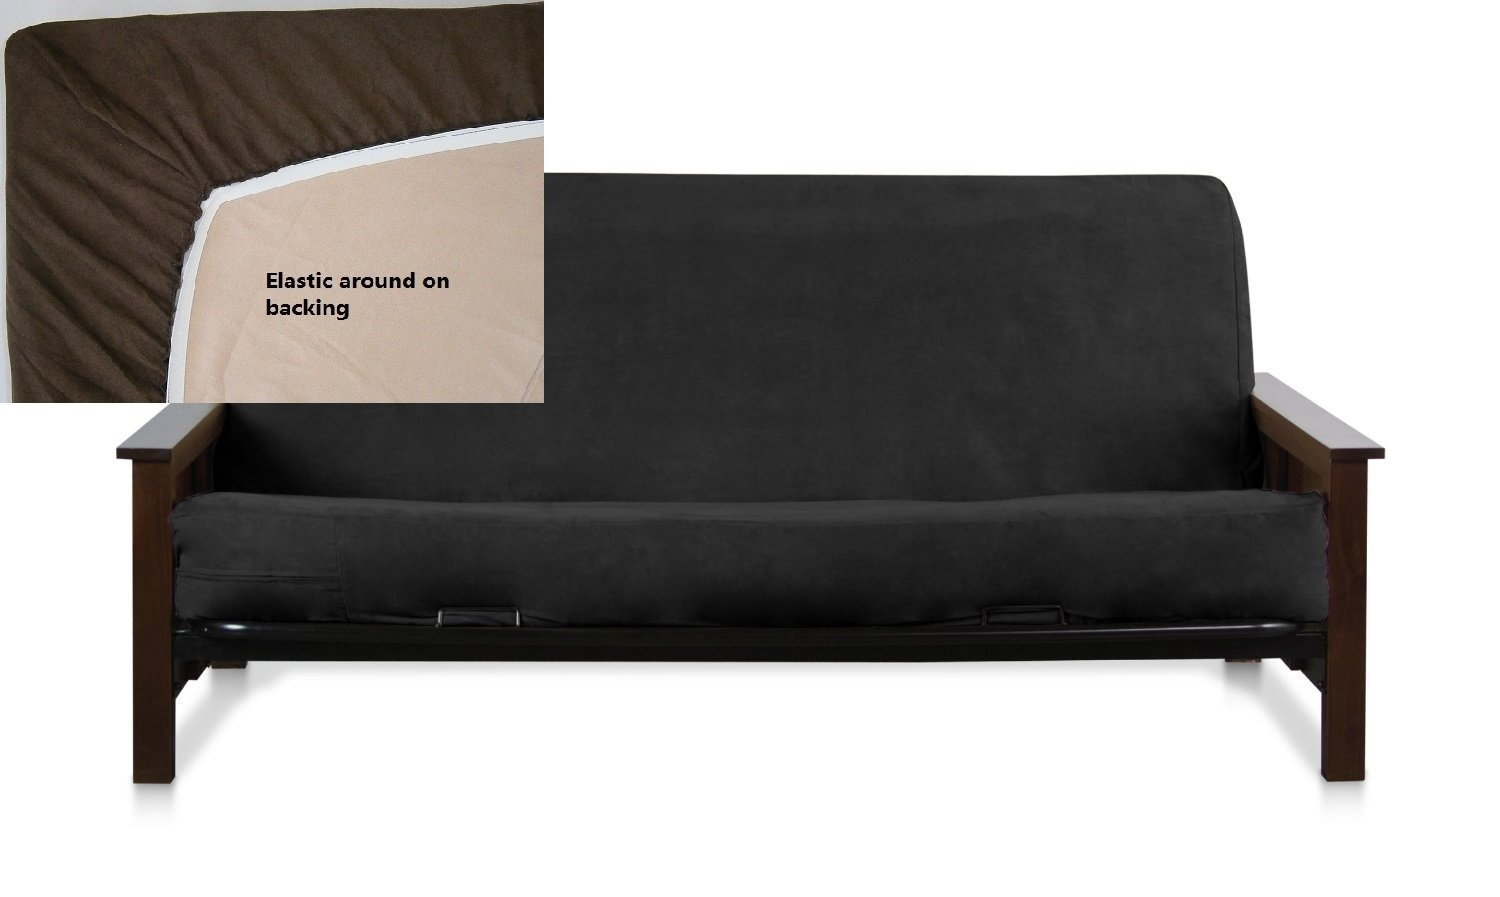 amazon    octorose full size elastic bonded micro suede easy fit fitted futon cover  black   home  u0026 kitchen amazon    octorose full size elastic bonded micro suede easy fit      rh   amazon